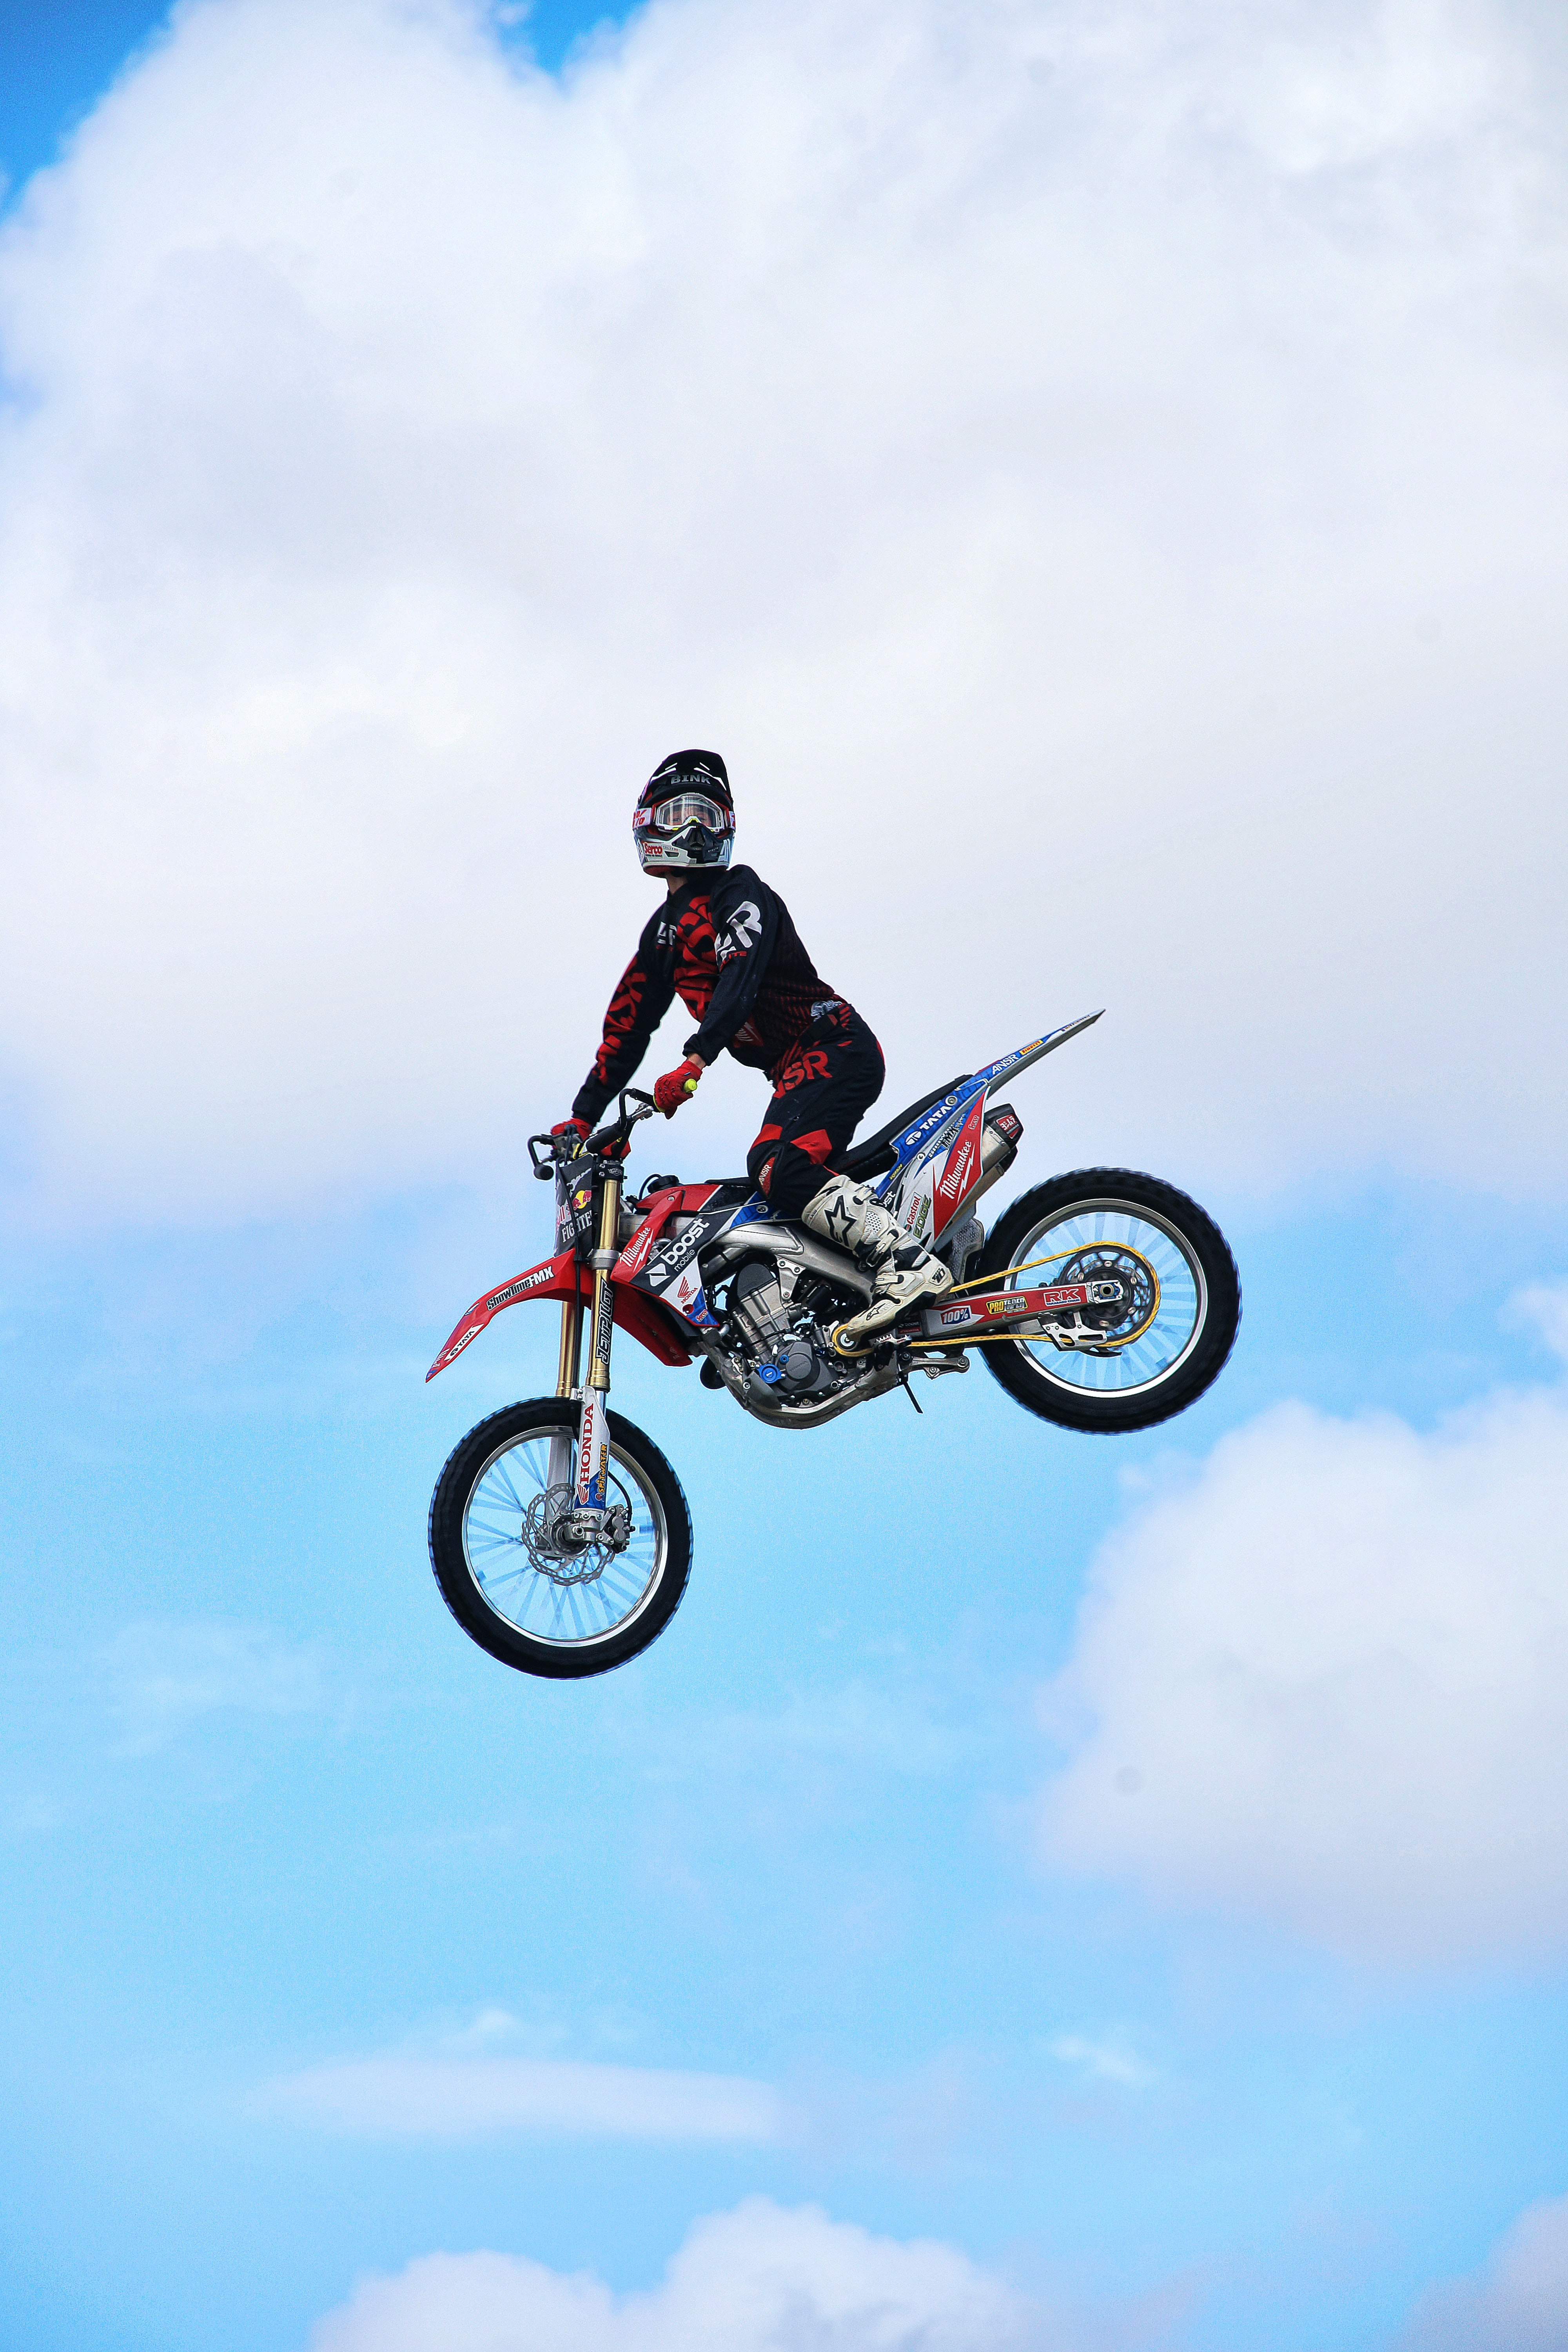 man riding dirt bike on air